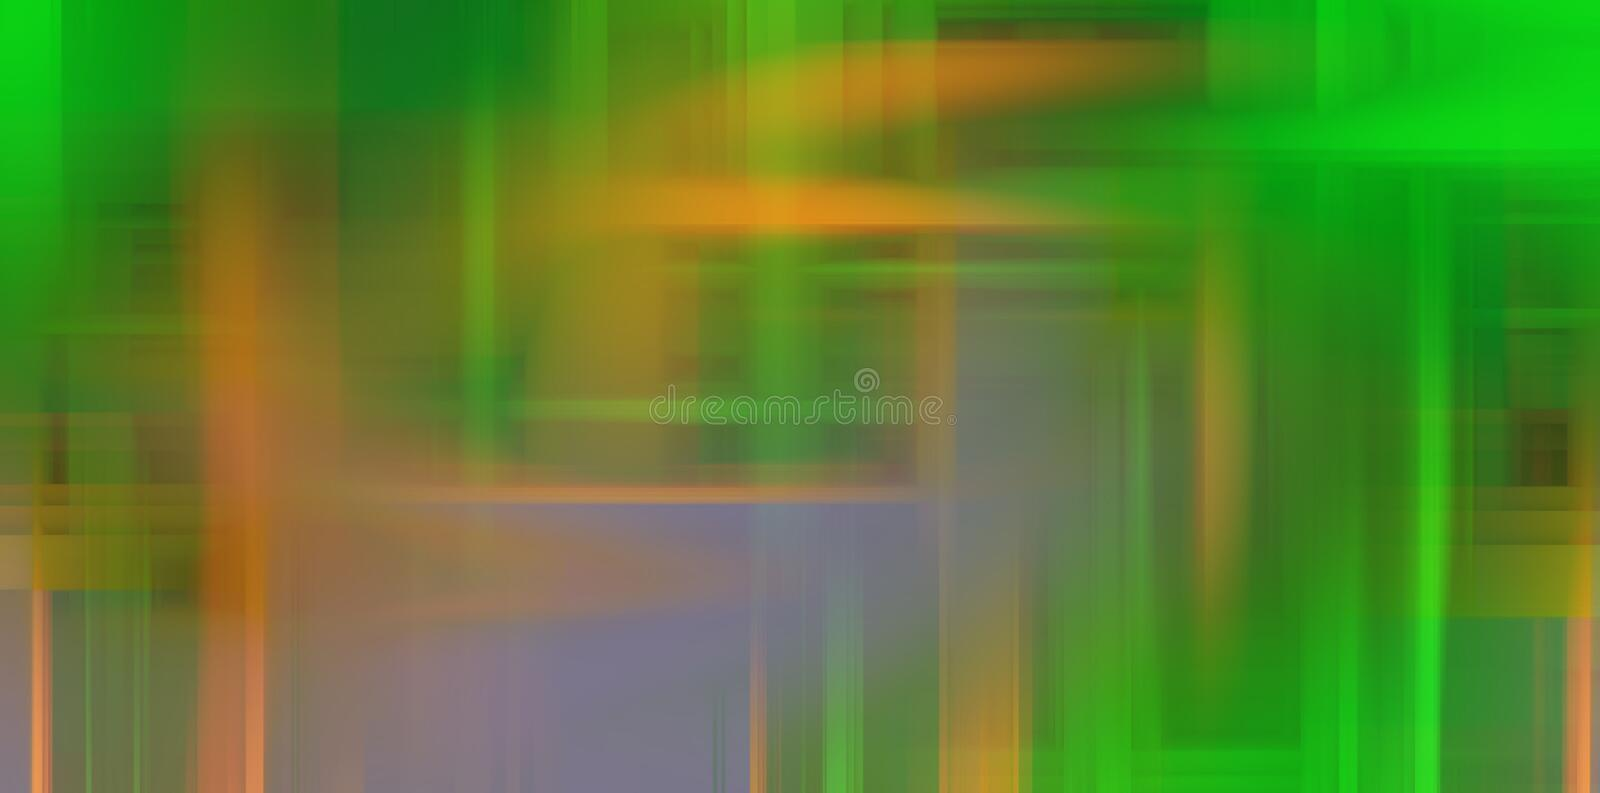 Abstract green orange lights background, colors, shades abstract graphics. Abstract background and texture stock image